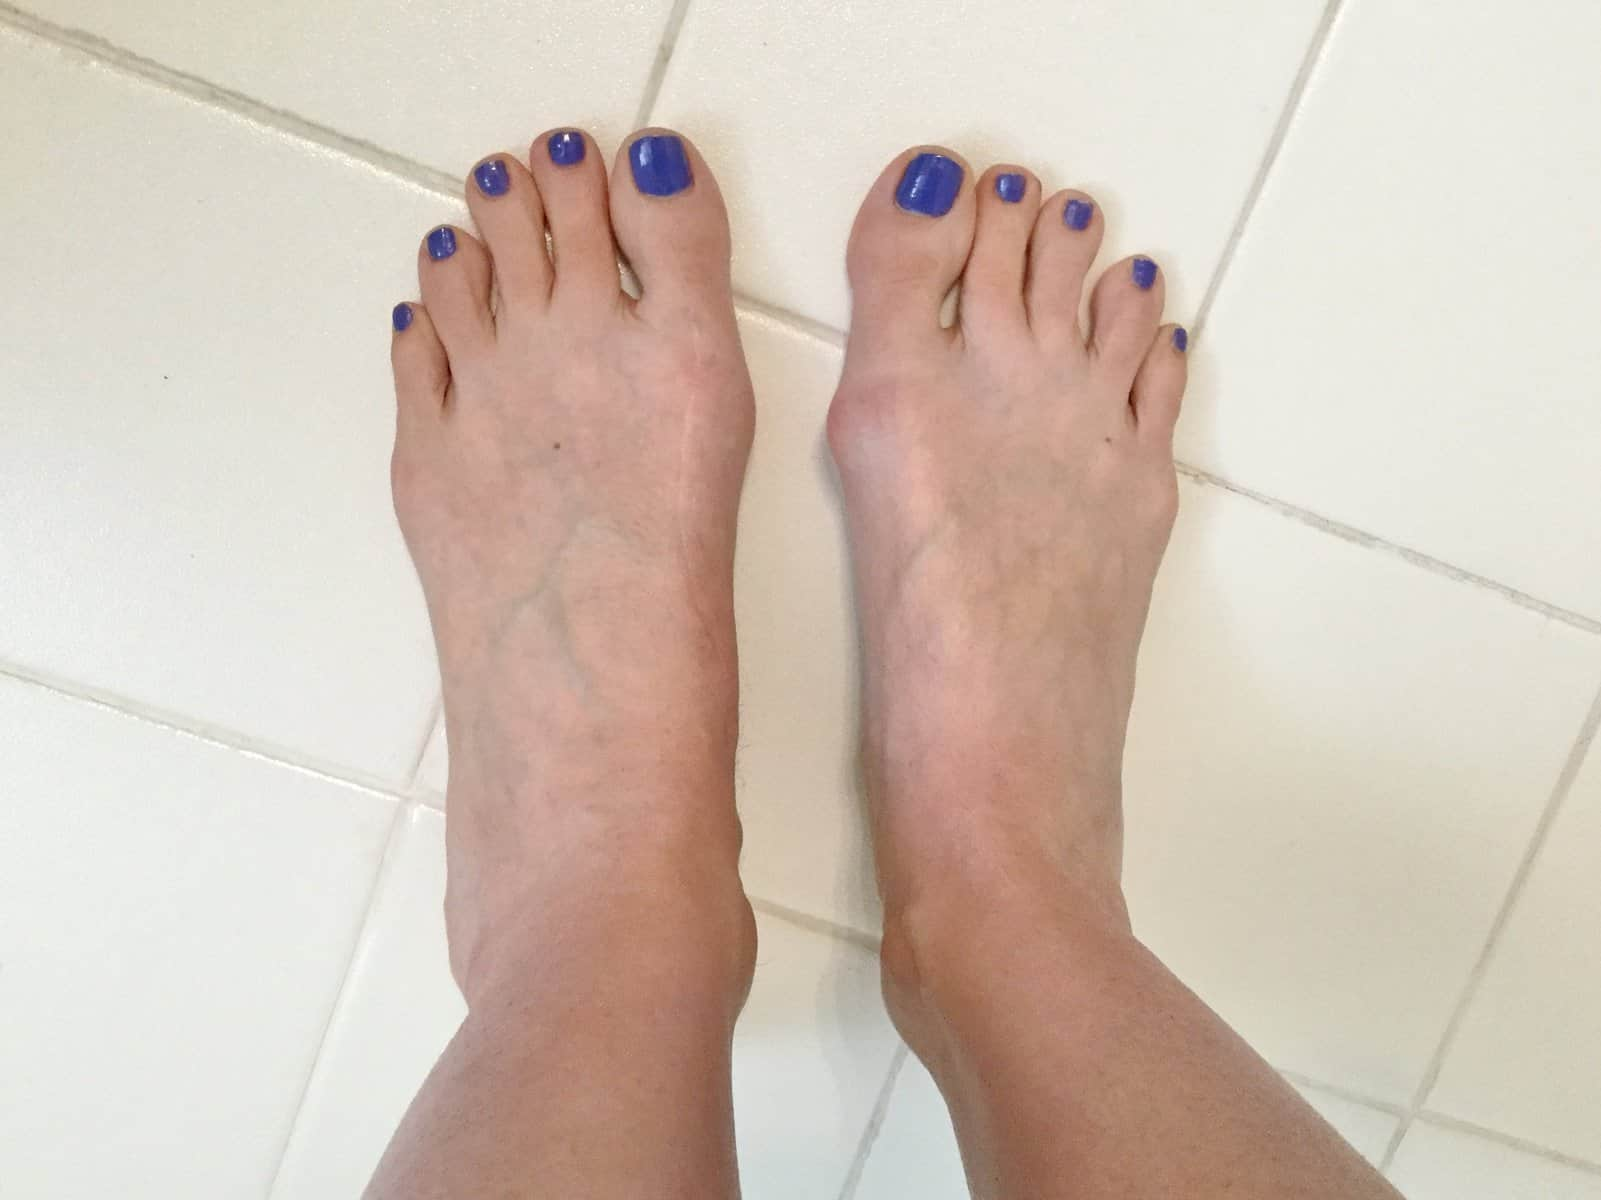 3 years After bunion surgery